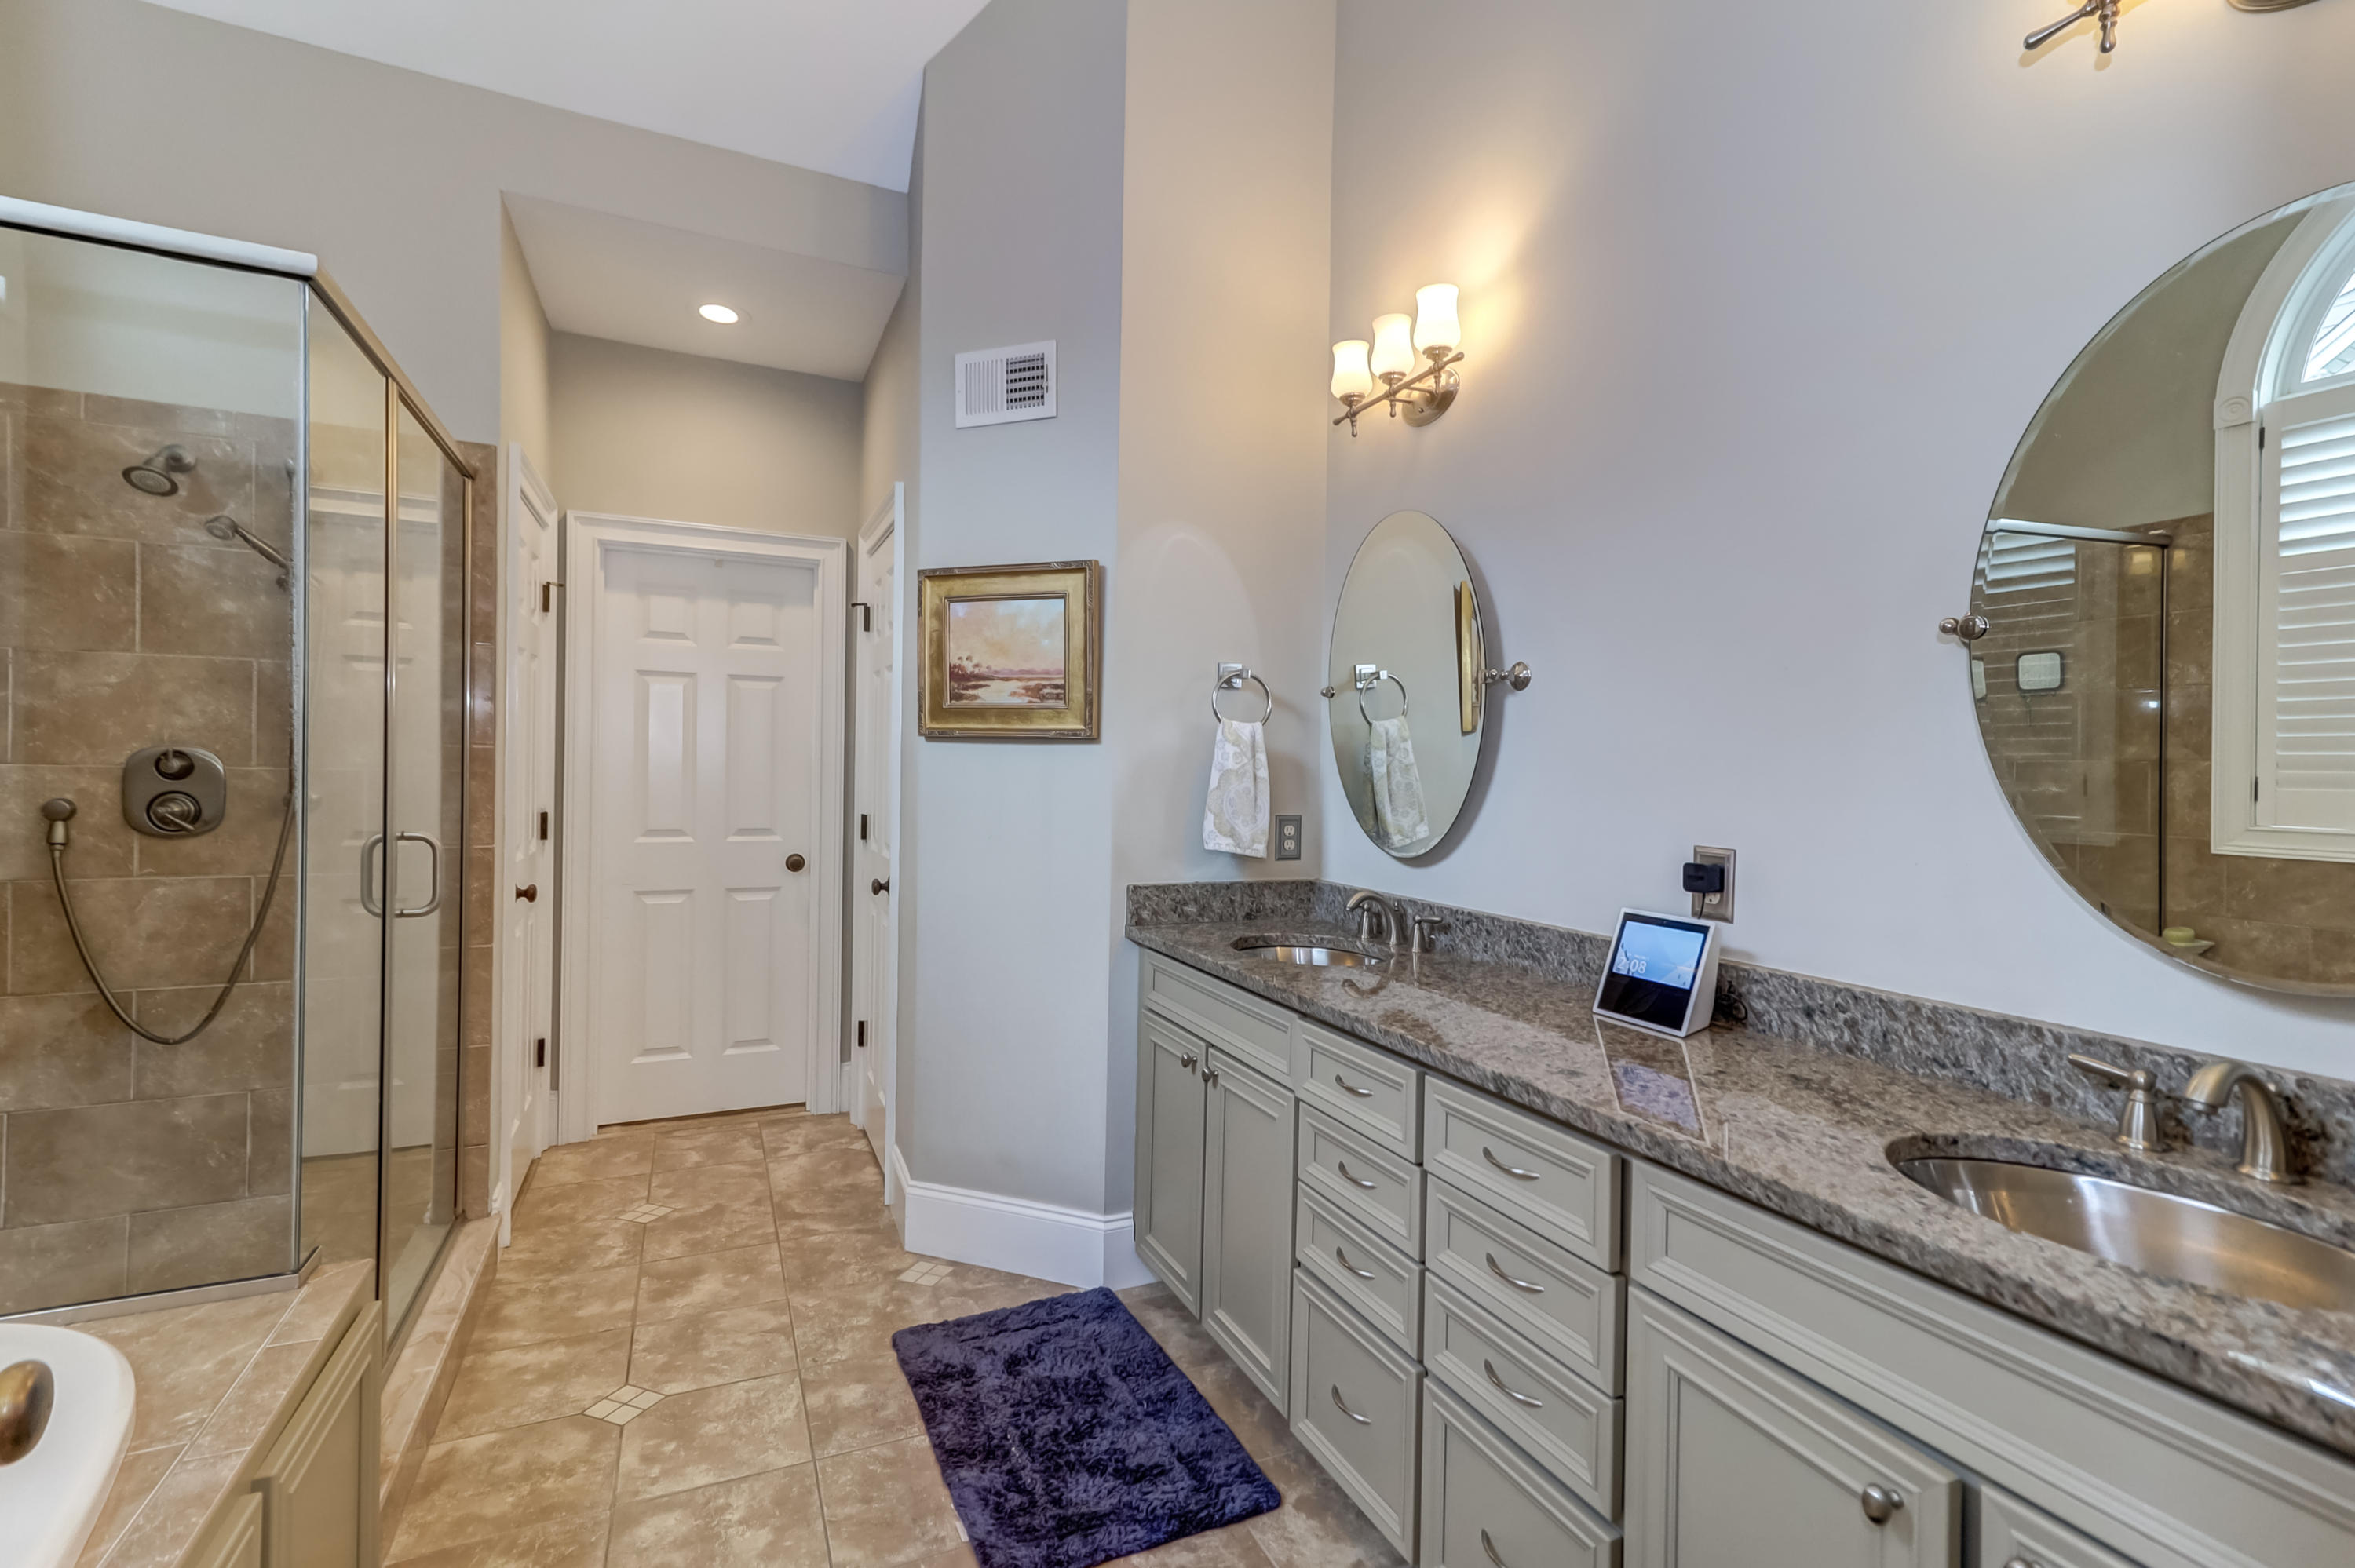 Woodward Pointe Homes For Sale - 657 White Chapel, Charleston, SC - 16